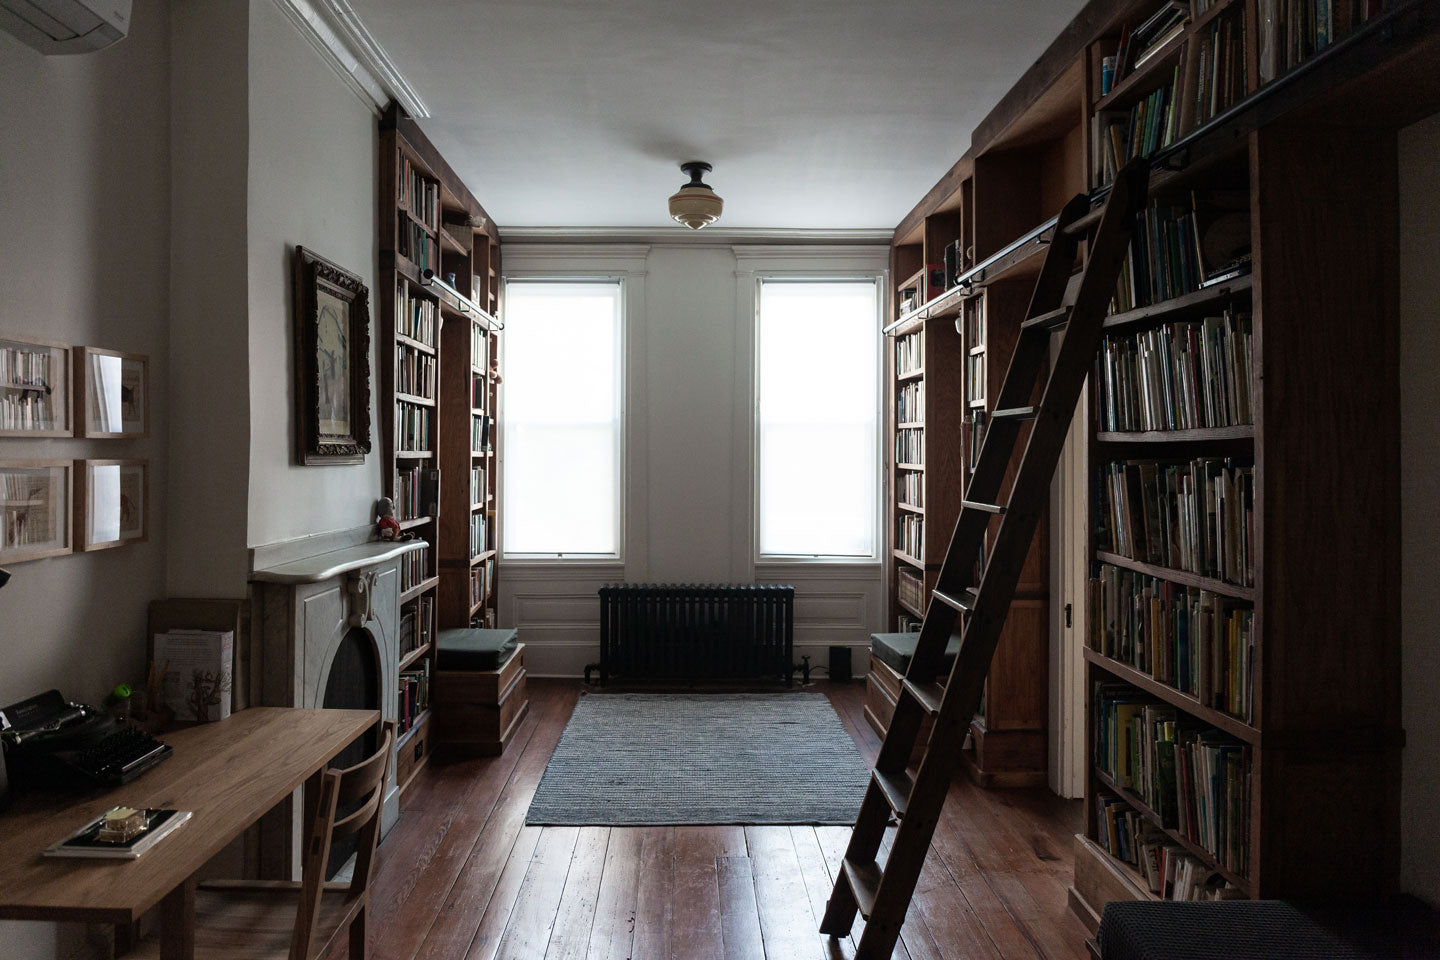 Peg and Awl House Library | Photograph by Rikumo